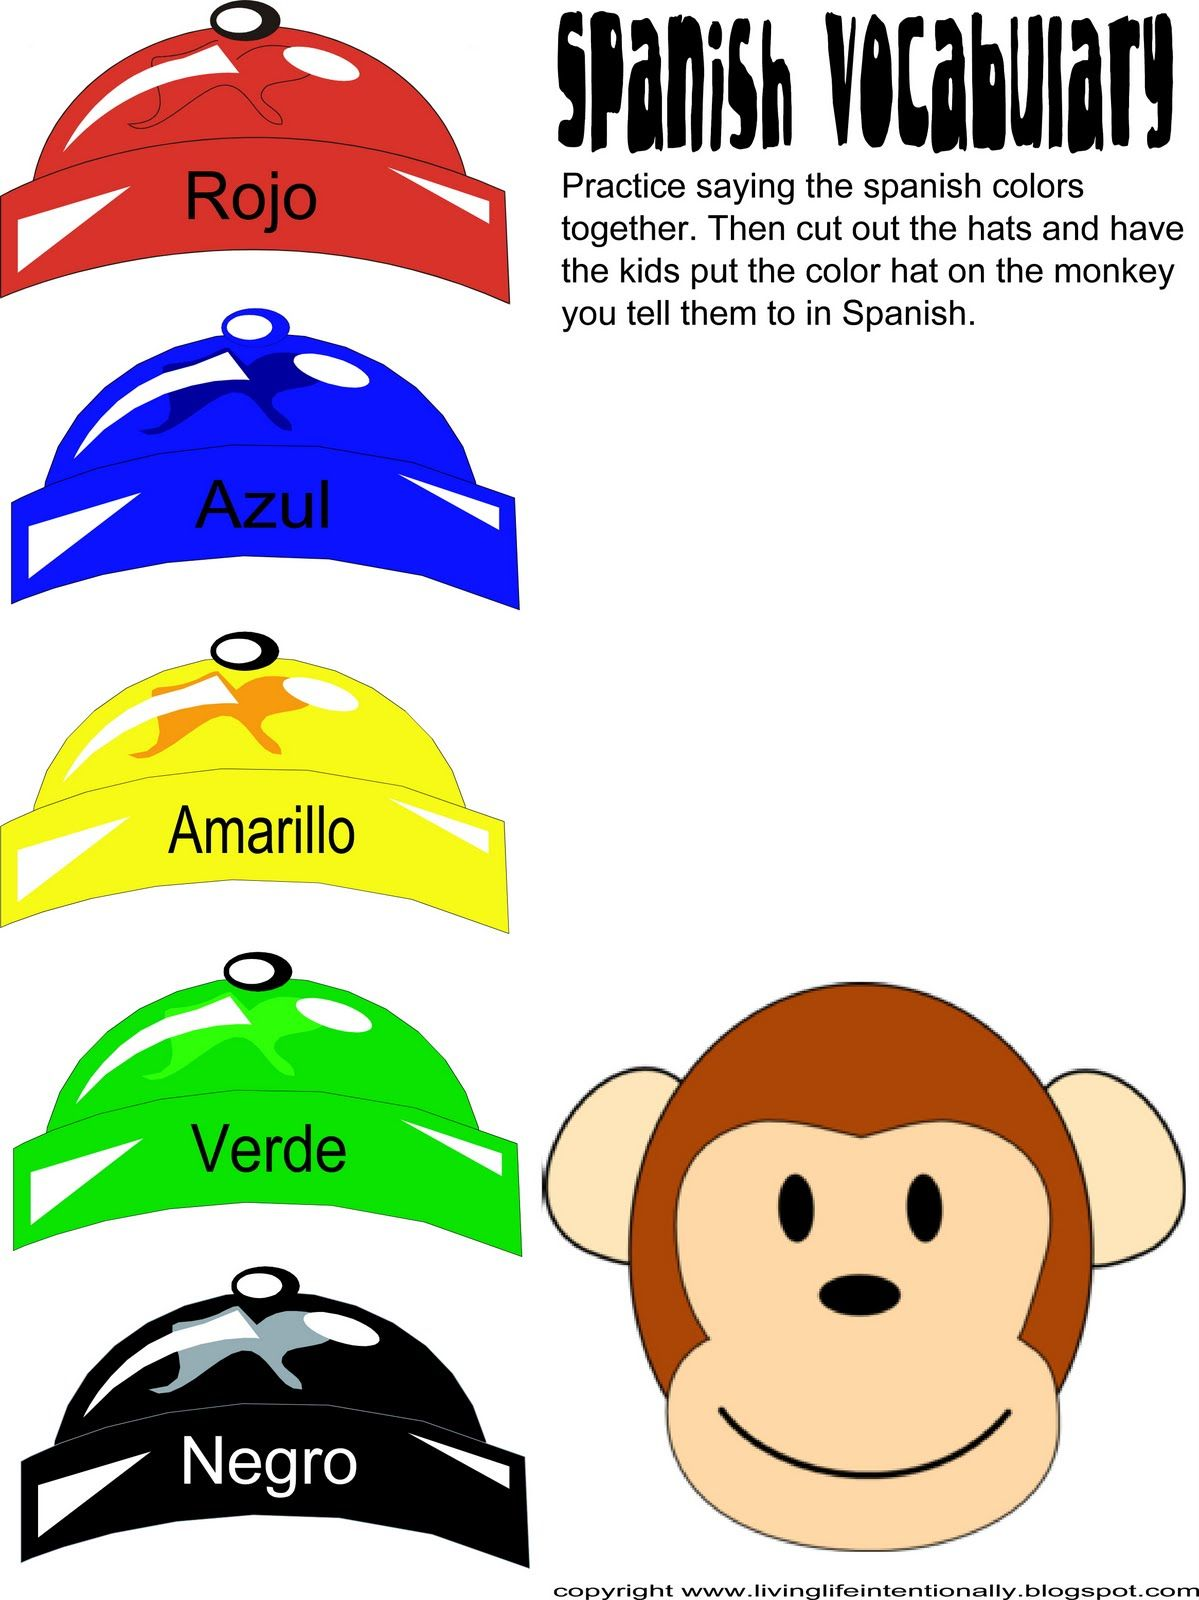 Spanish colors for preschool - Caps For Sale Unit Project Ideas Spanish Color Practice